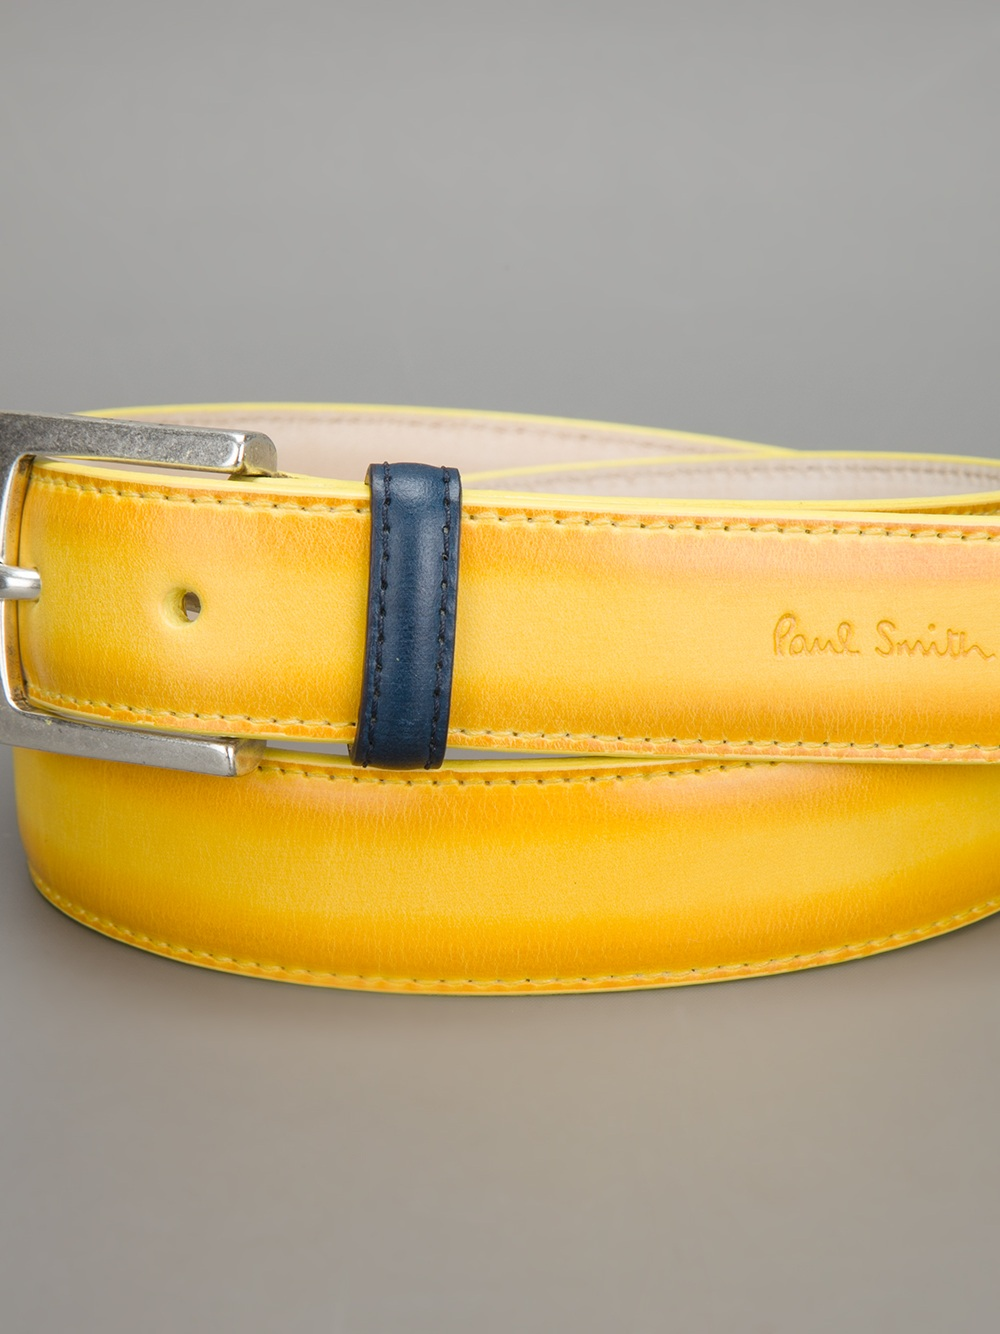 paul smith burnished leather belt in yellow for lyst